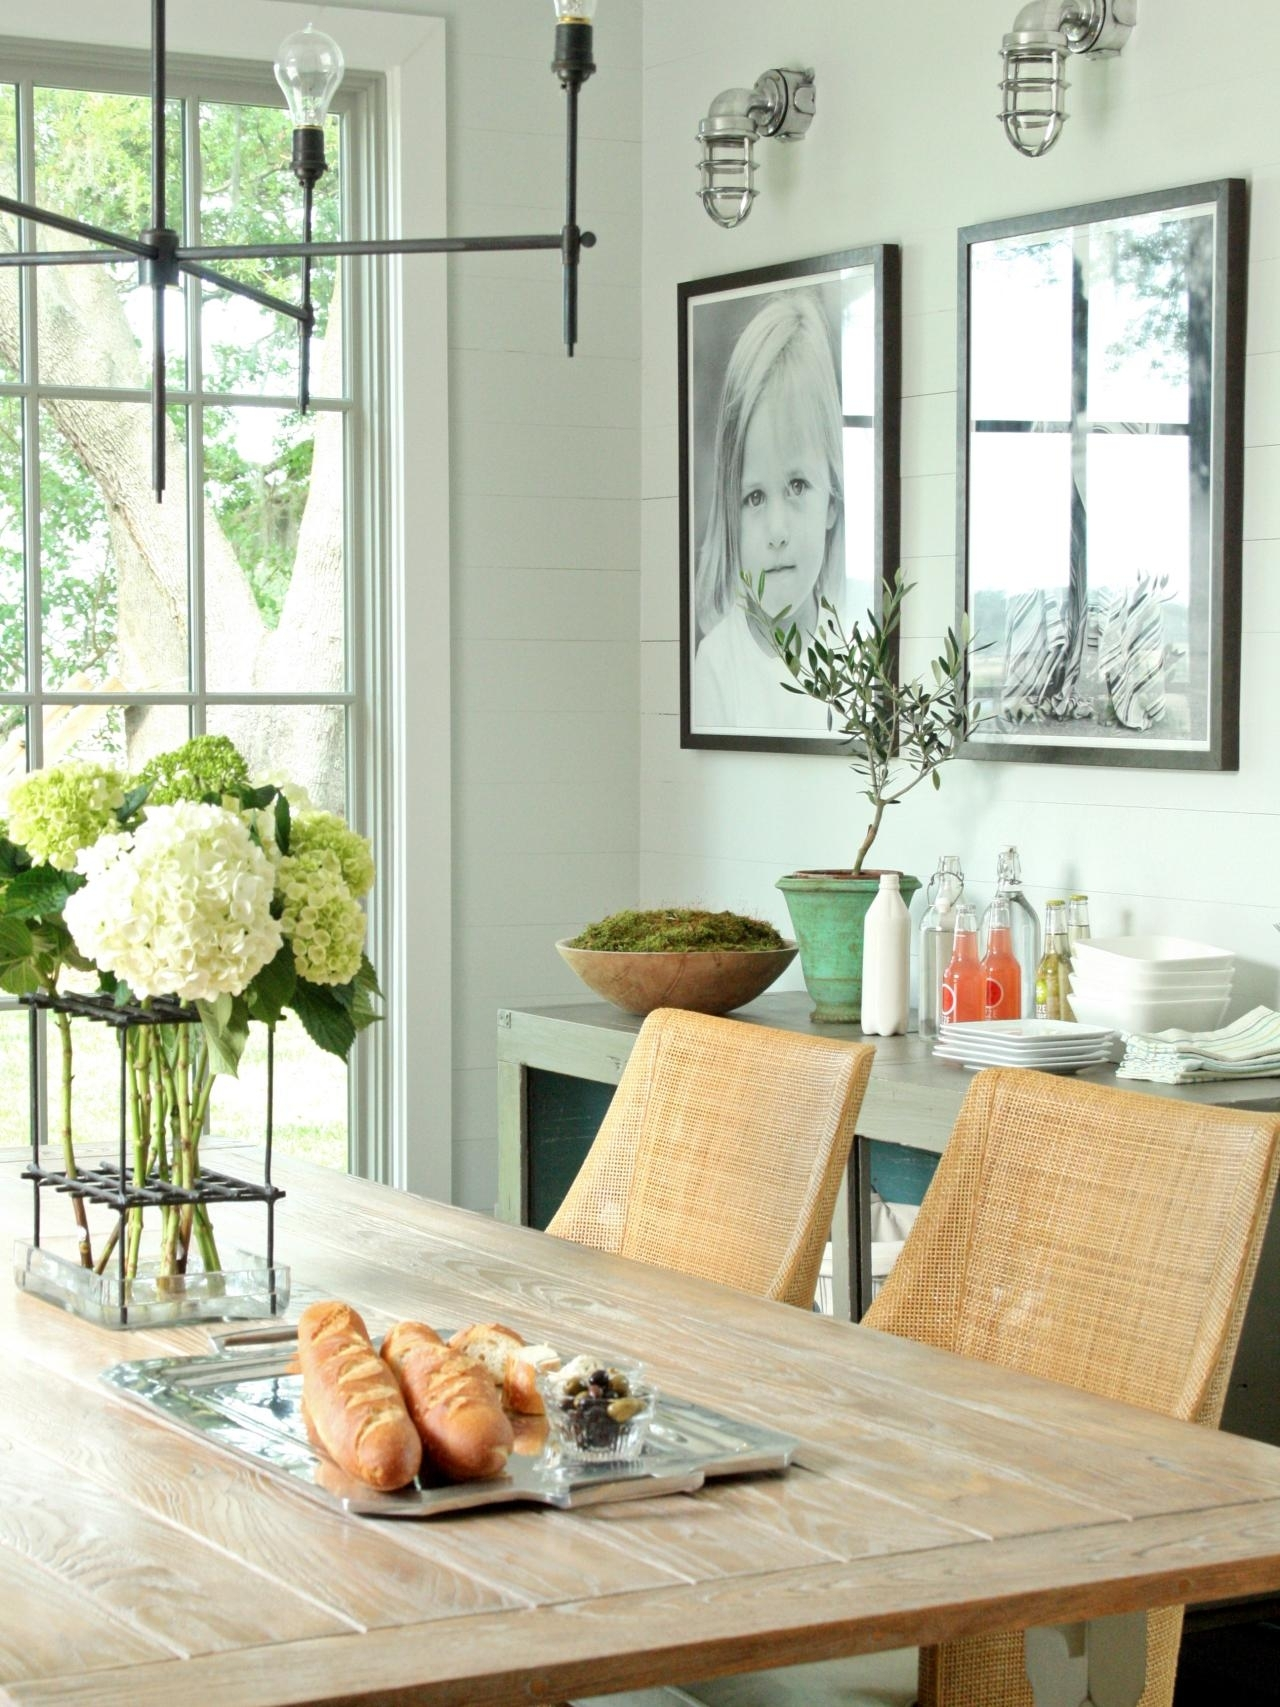 15 ways to dress up your dining room walls | hgtv's decorating